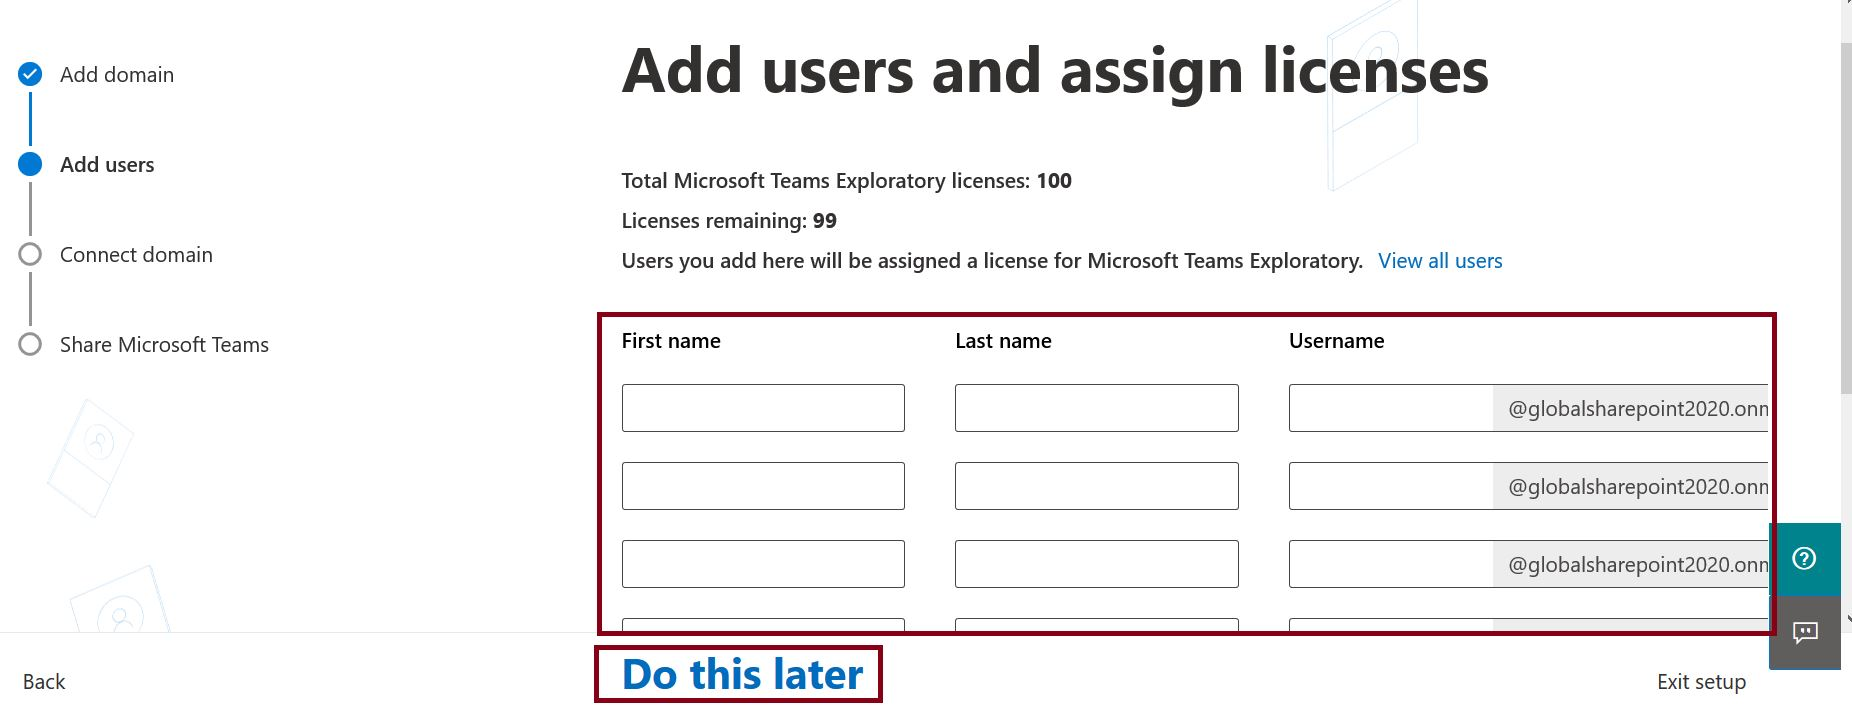 Add users and assign licenses in Microsoft 365 admin center